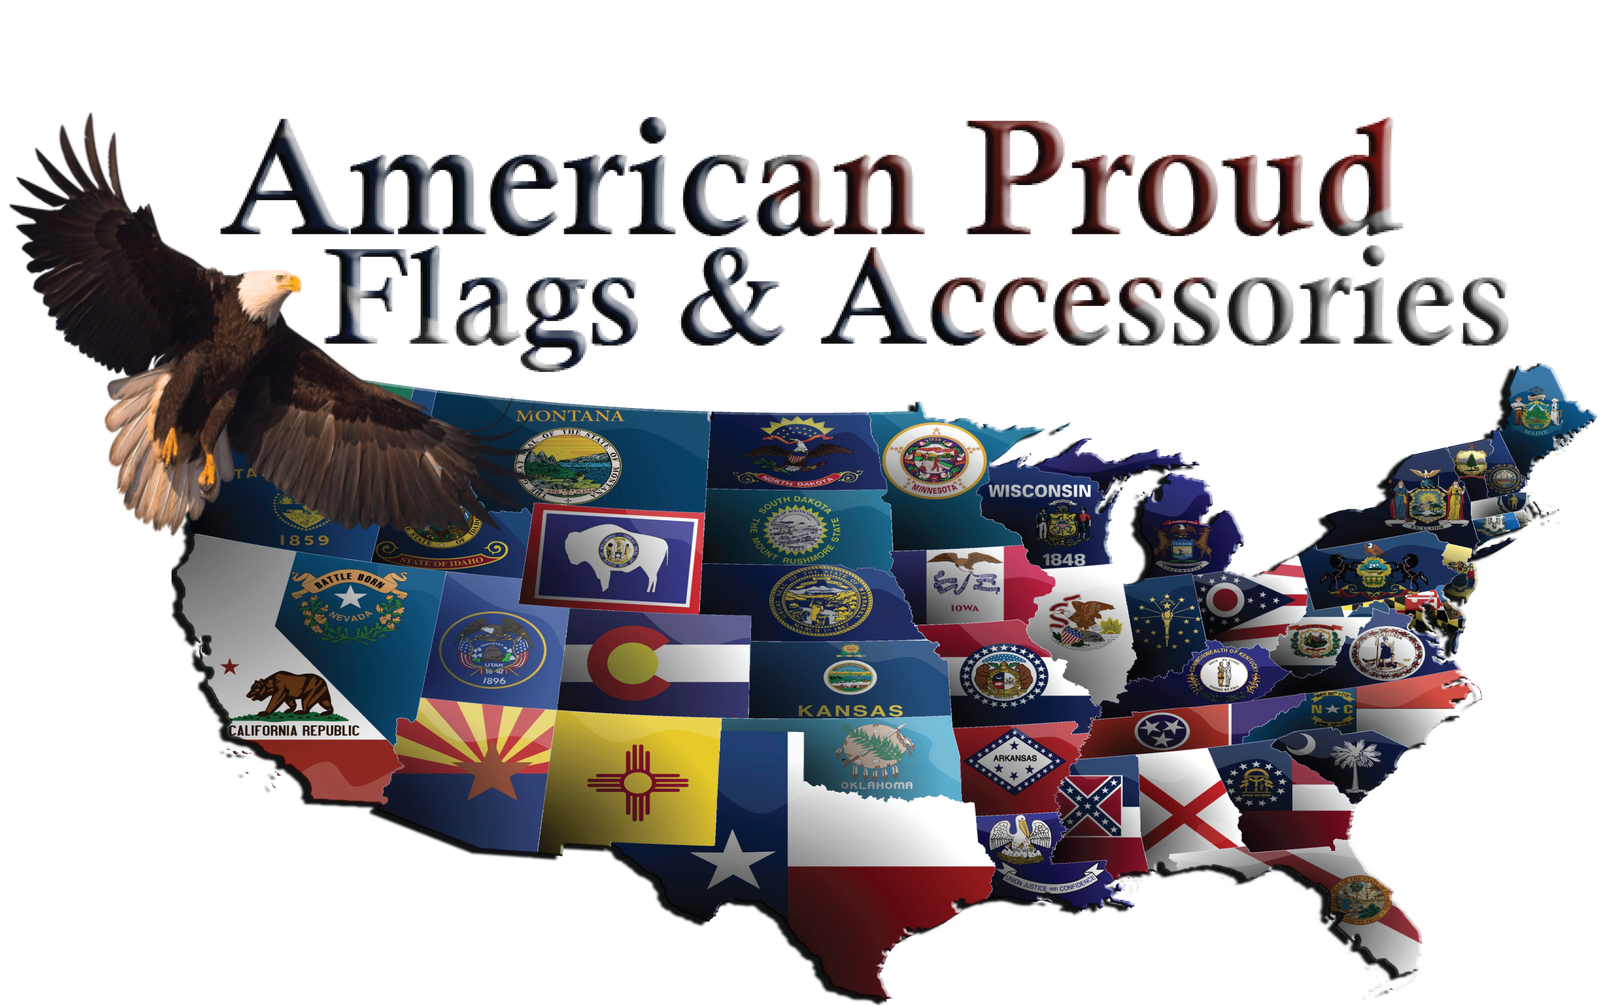 American Proud Flags & Accessories